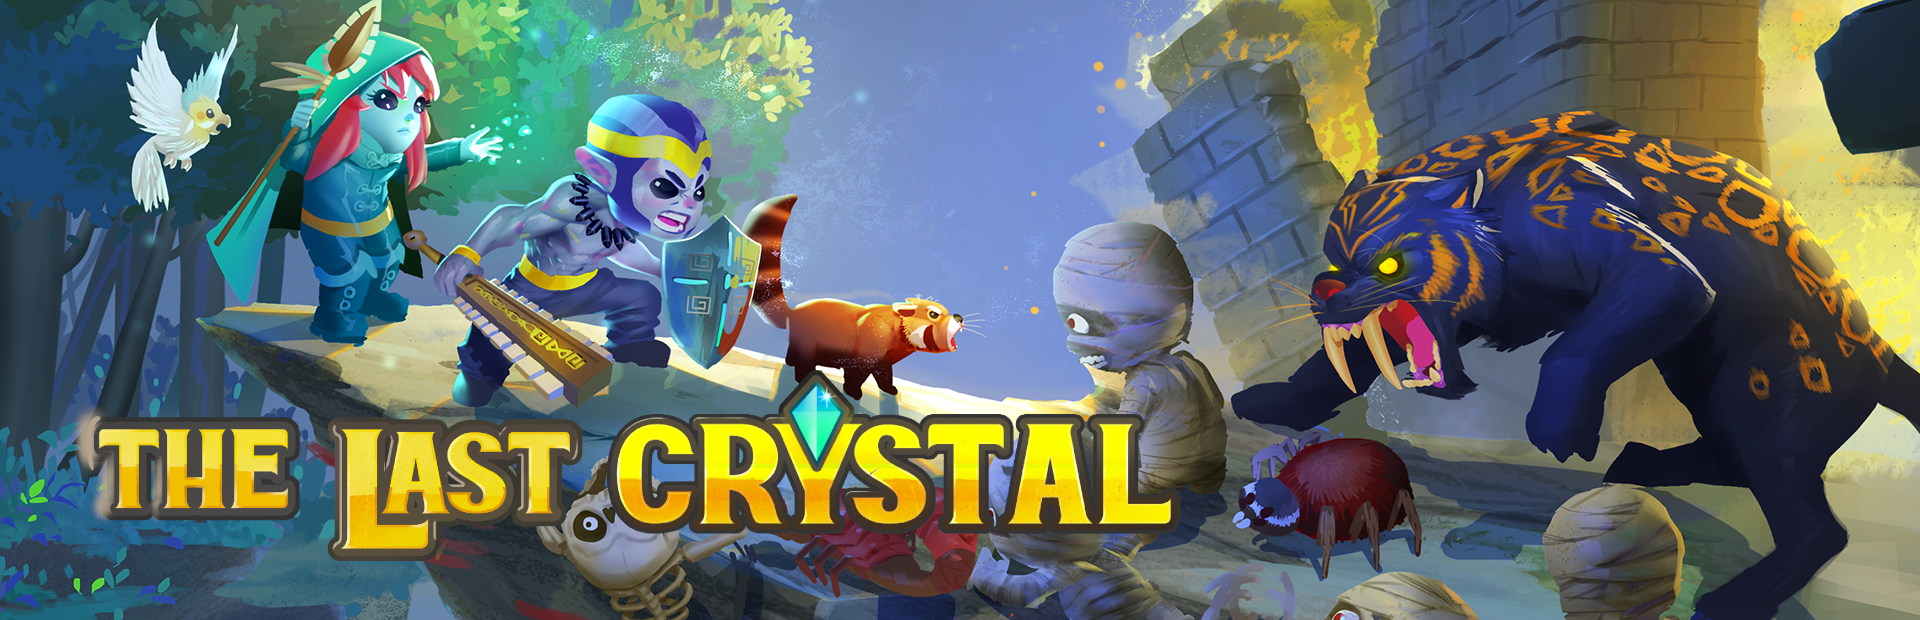 The Last Crystal — Co-op Adventure Game — Kickstarter and demo release!